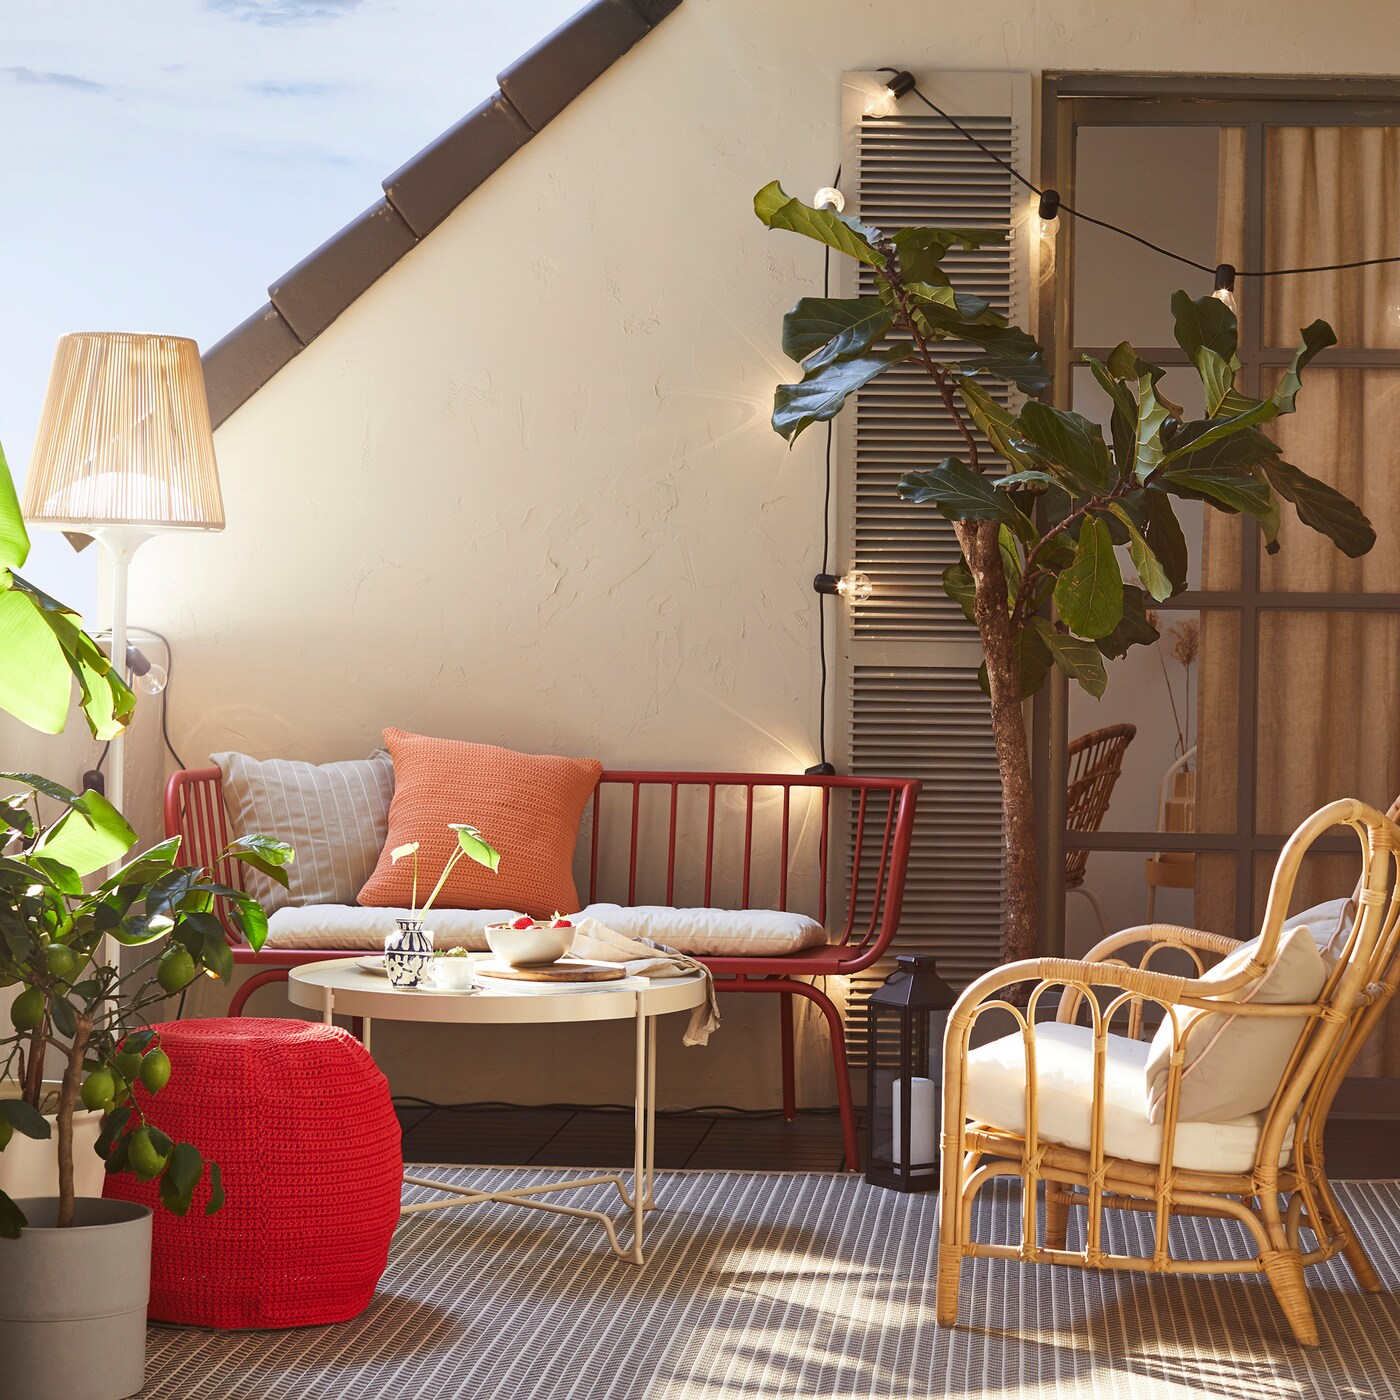 Outdoor balcony/patio, with BRUSSEN 3-seat outdoor sofa in red and a rattan chair with lots of greenery in plant pots.